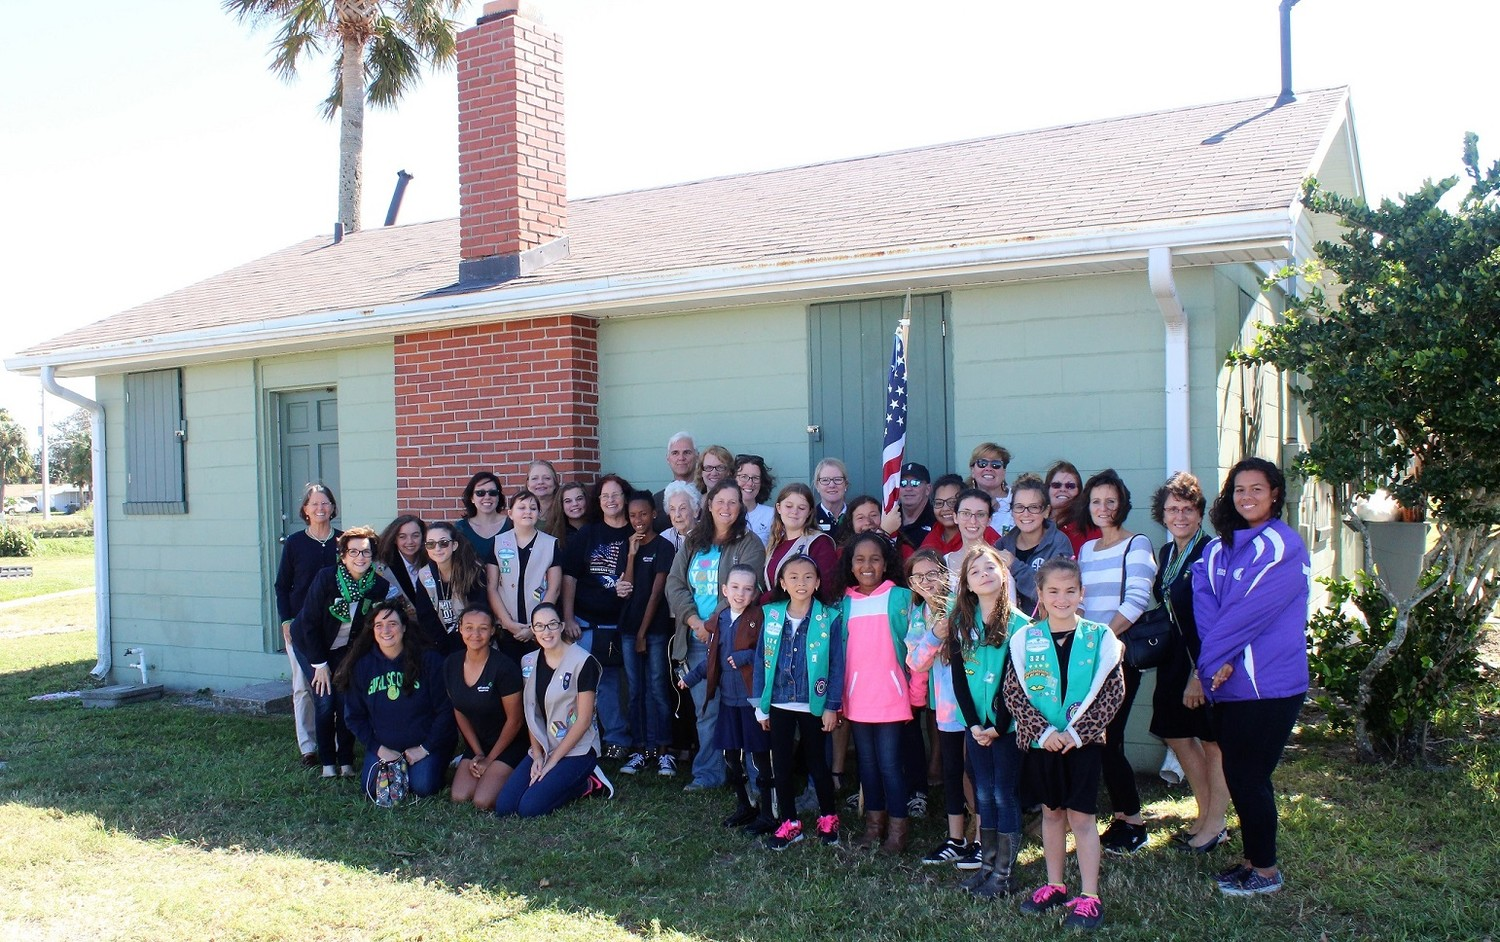 Three generations of Girl Scouts join Girl Scouts of Gateway Council CEO Mary Anne Jacobs outside of the Beaches Little House in Neptune Beach.